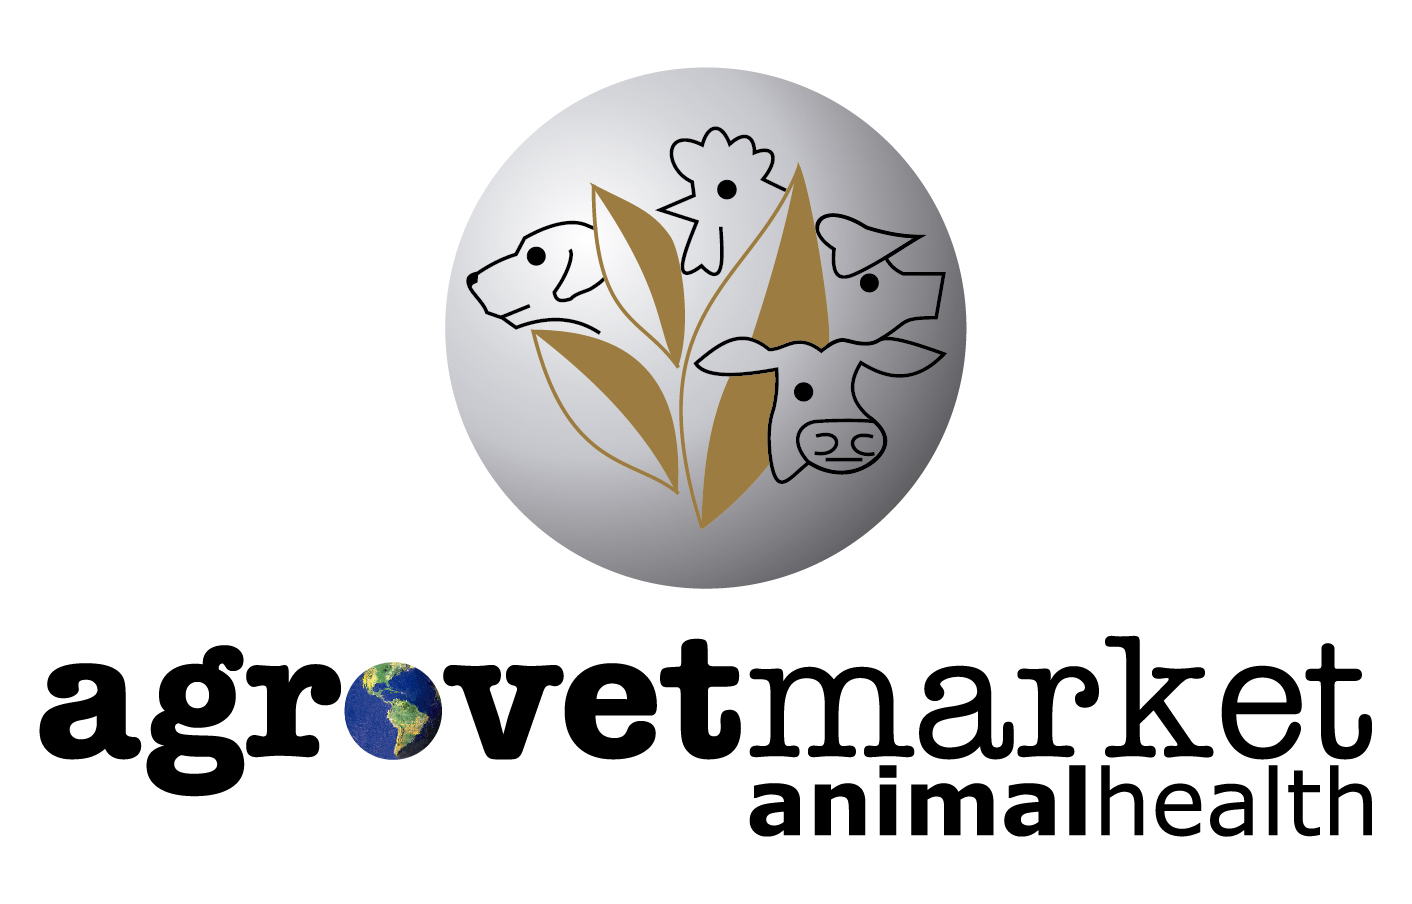 Veterinary Suppliers in Peru - Veterinary Products1 com